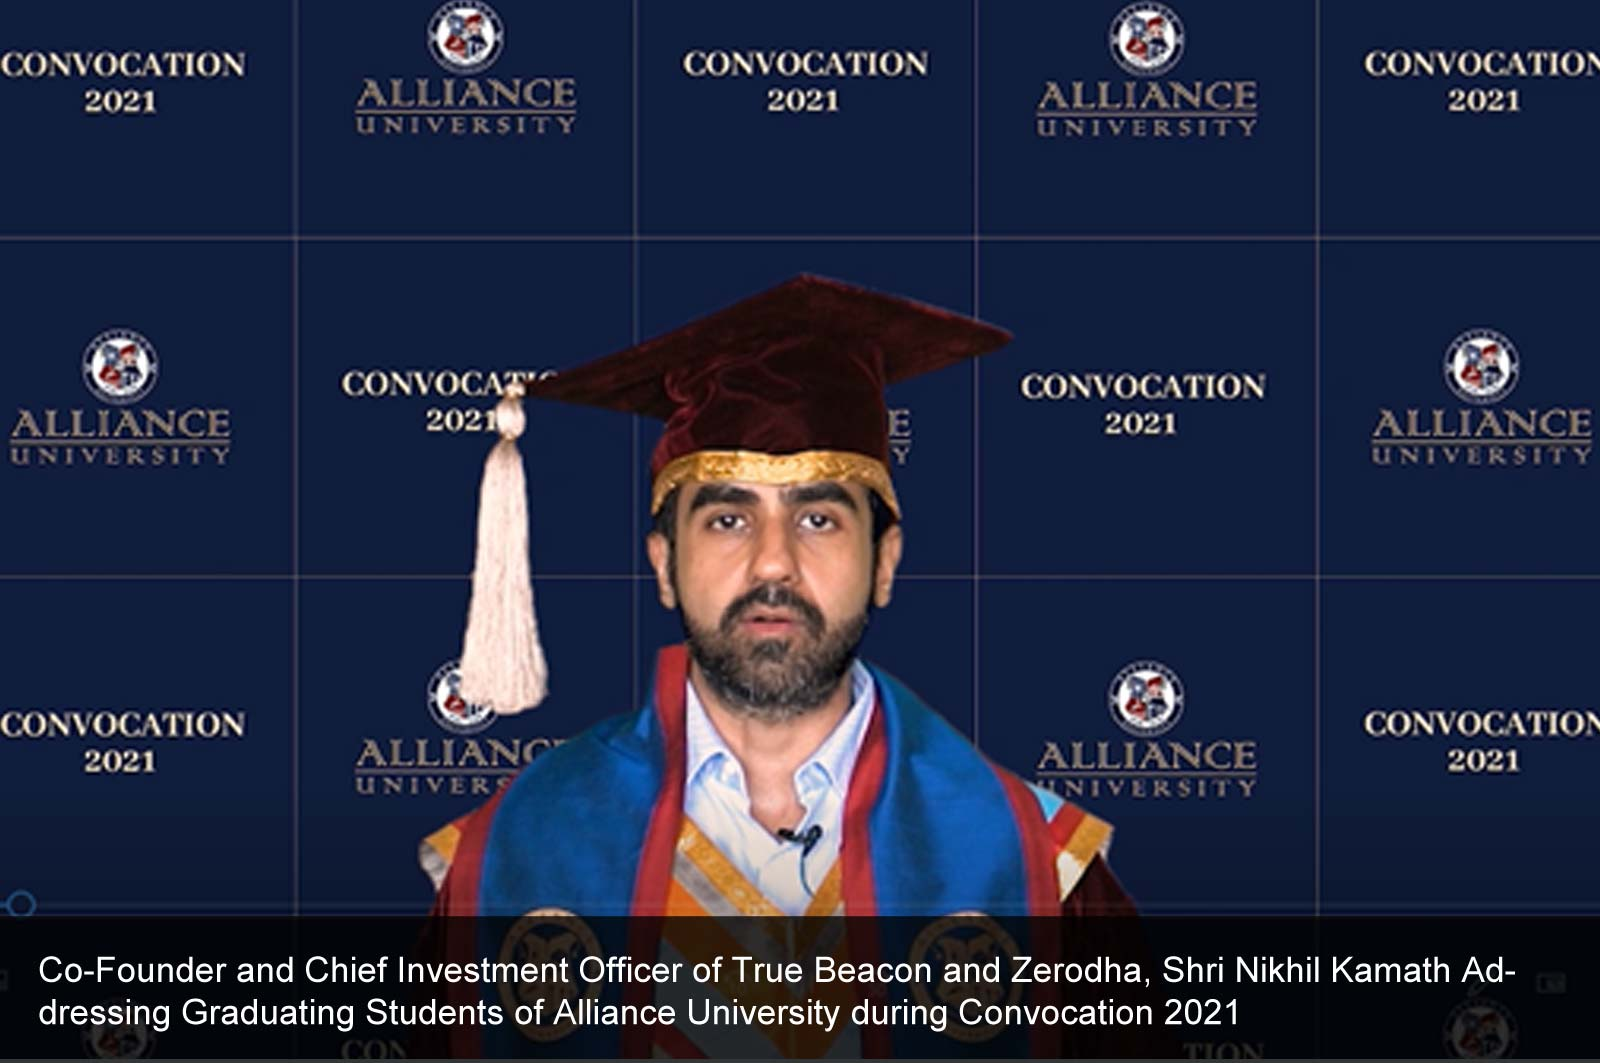 Co-Founder and Chief Investment Officer of True Beacon and Zerodha, Shri Nikhil Kamath, a Young and Dynamic Entrepreneur Addresses Graduating Students on Convocation 2021